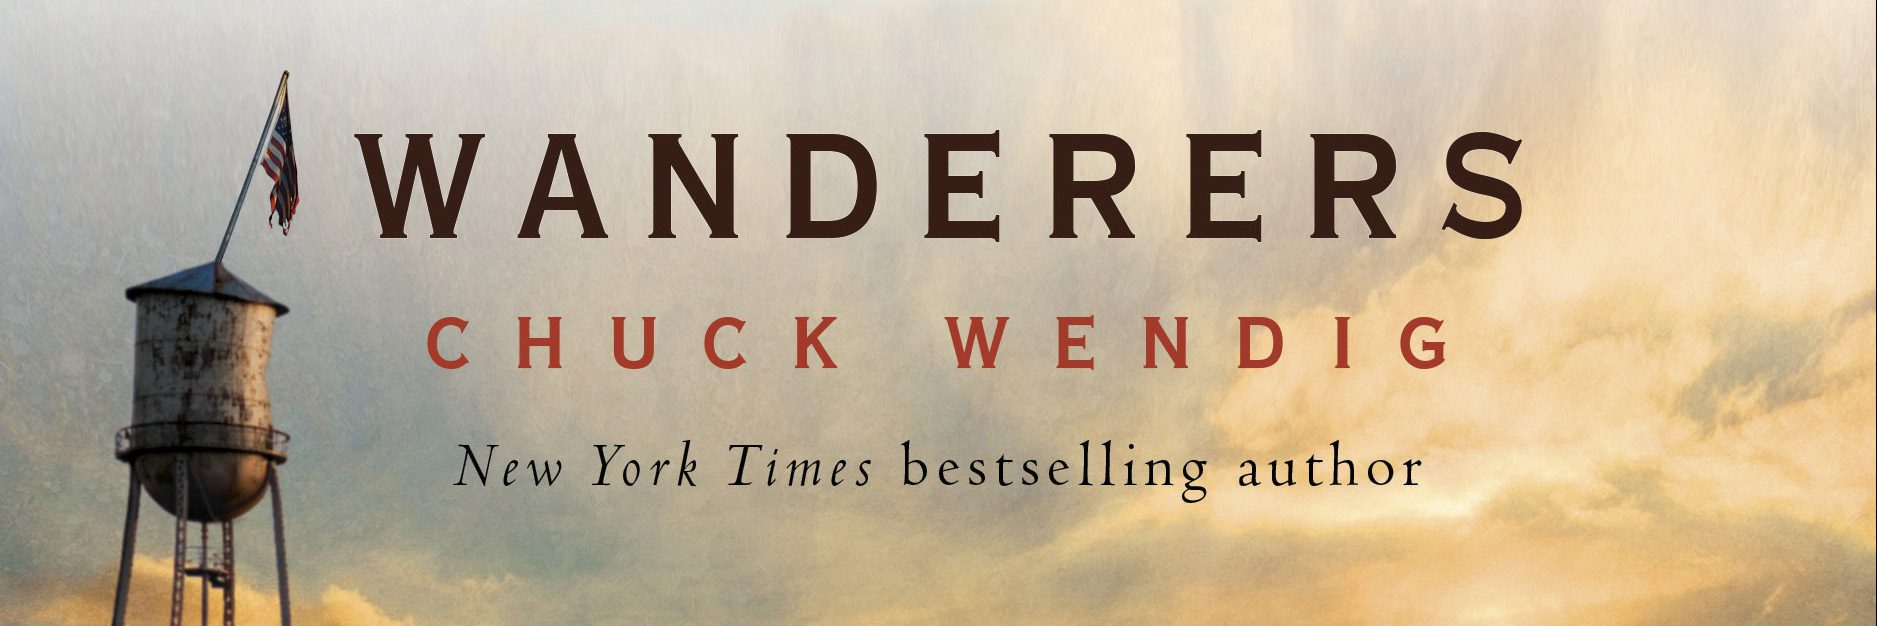 Wanderers revised banner